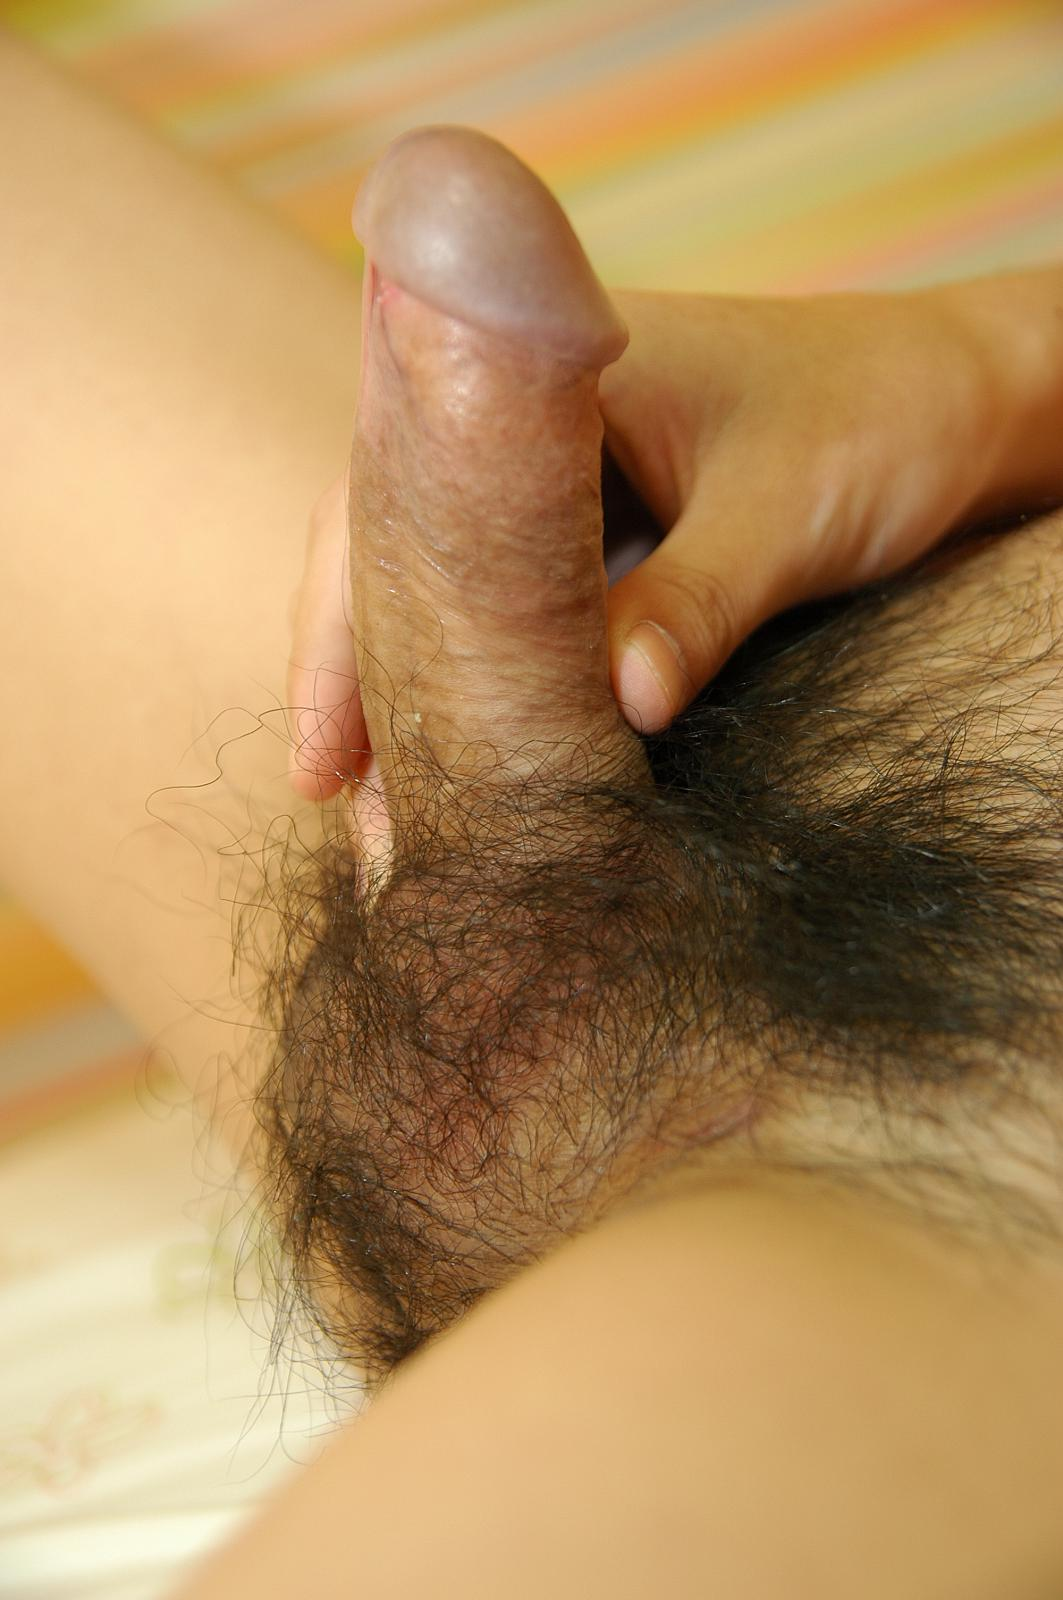 Japan-Studs-Shintaro-Ikeda-jerk-off-cum-Asian-big-cock-06 Japanese Street Boy Jerks Hairy Uncut Asian Cock and Cums For Cash